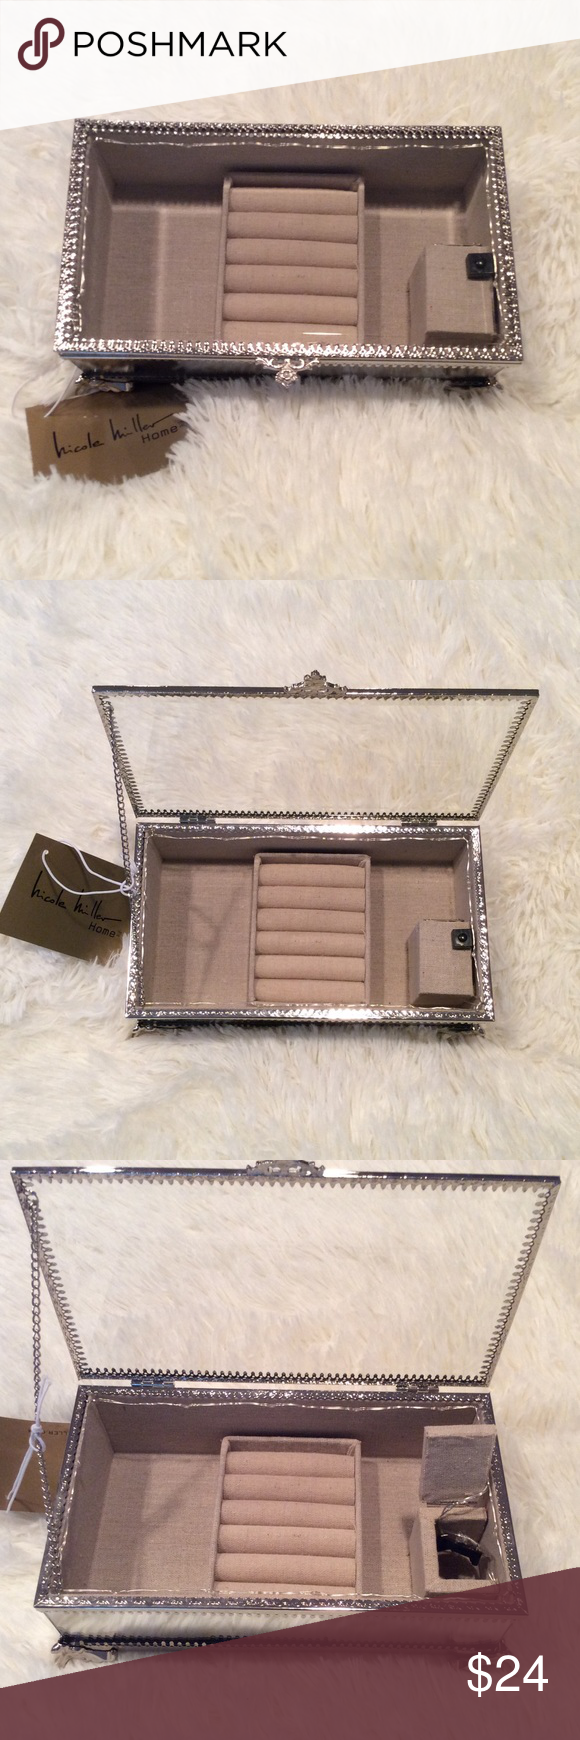 Nicole Miller Jewelry Box Mesmerizing Nicole Miller Jewelry Box With Mirrored Sides Nwt 2018